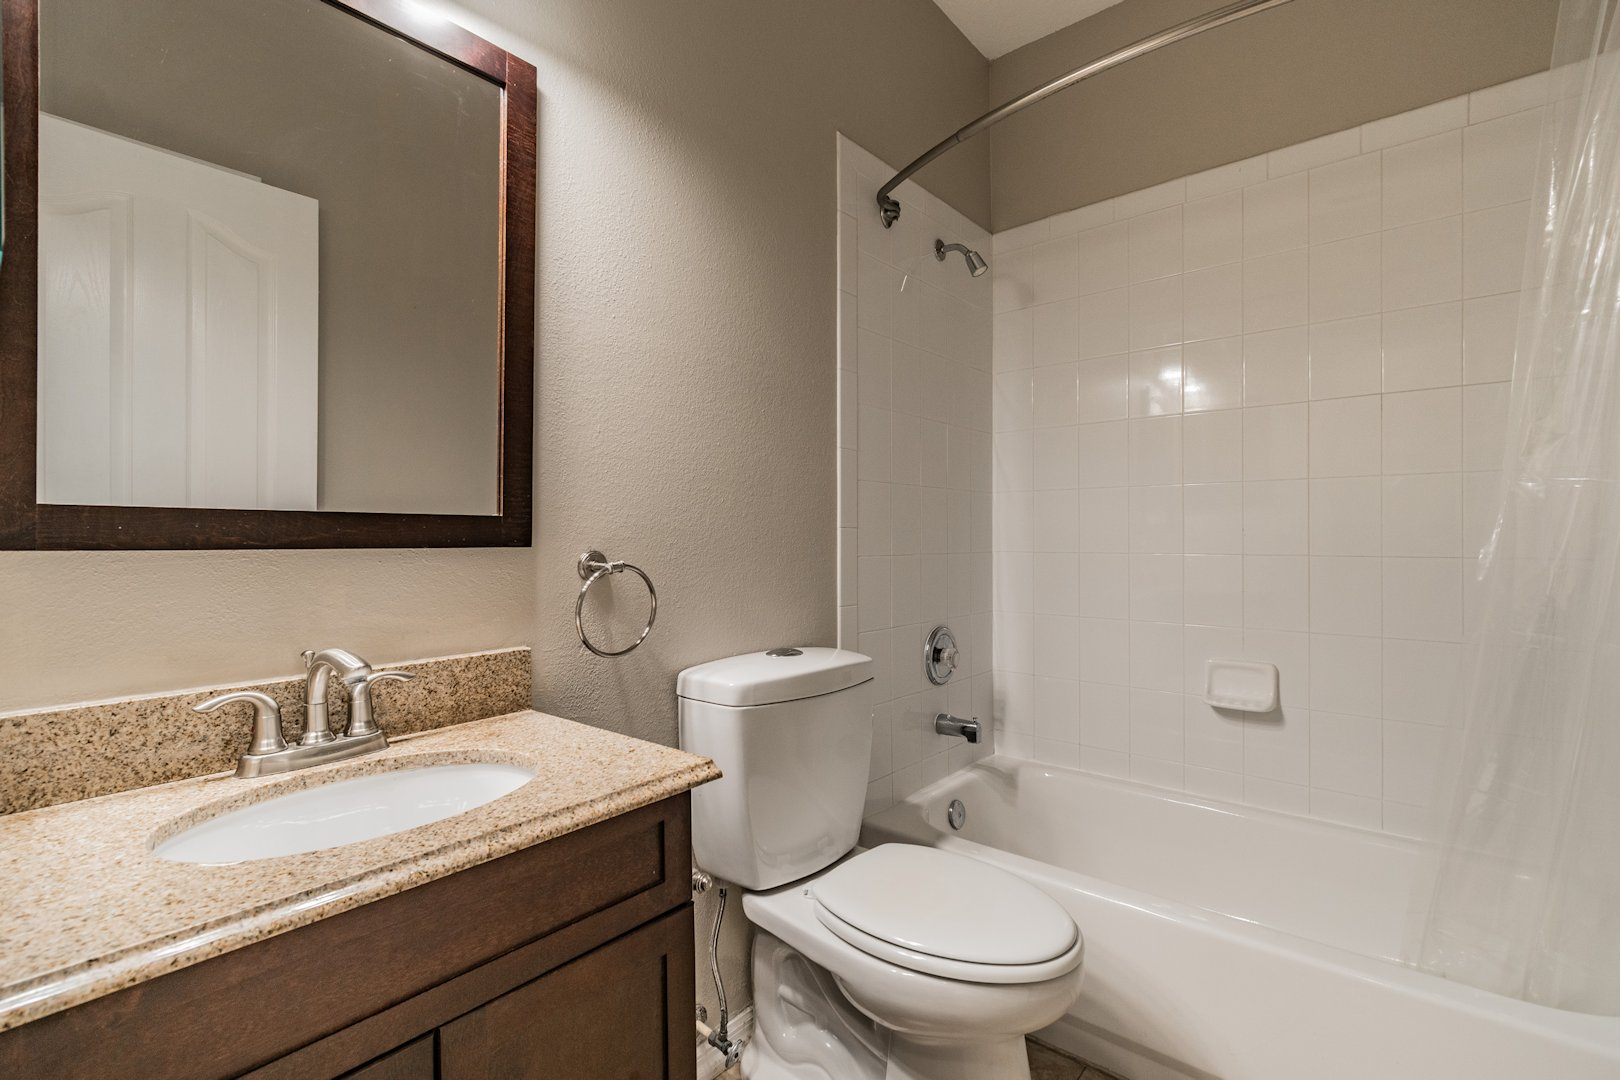 2929 bayshore Pointe Dr. Tampa Fl, Bayshore Pointe Townhomes (17)